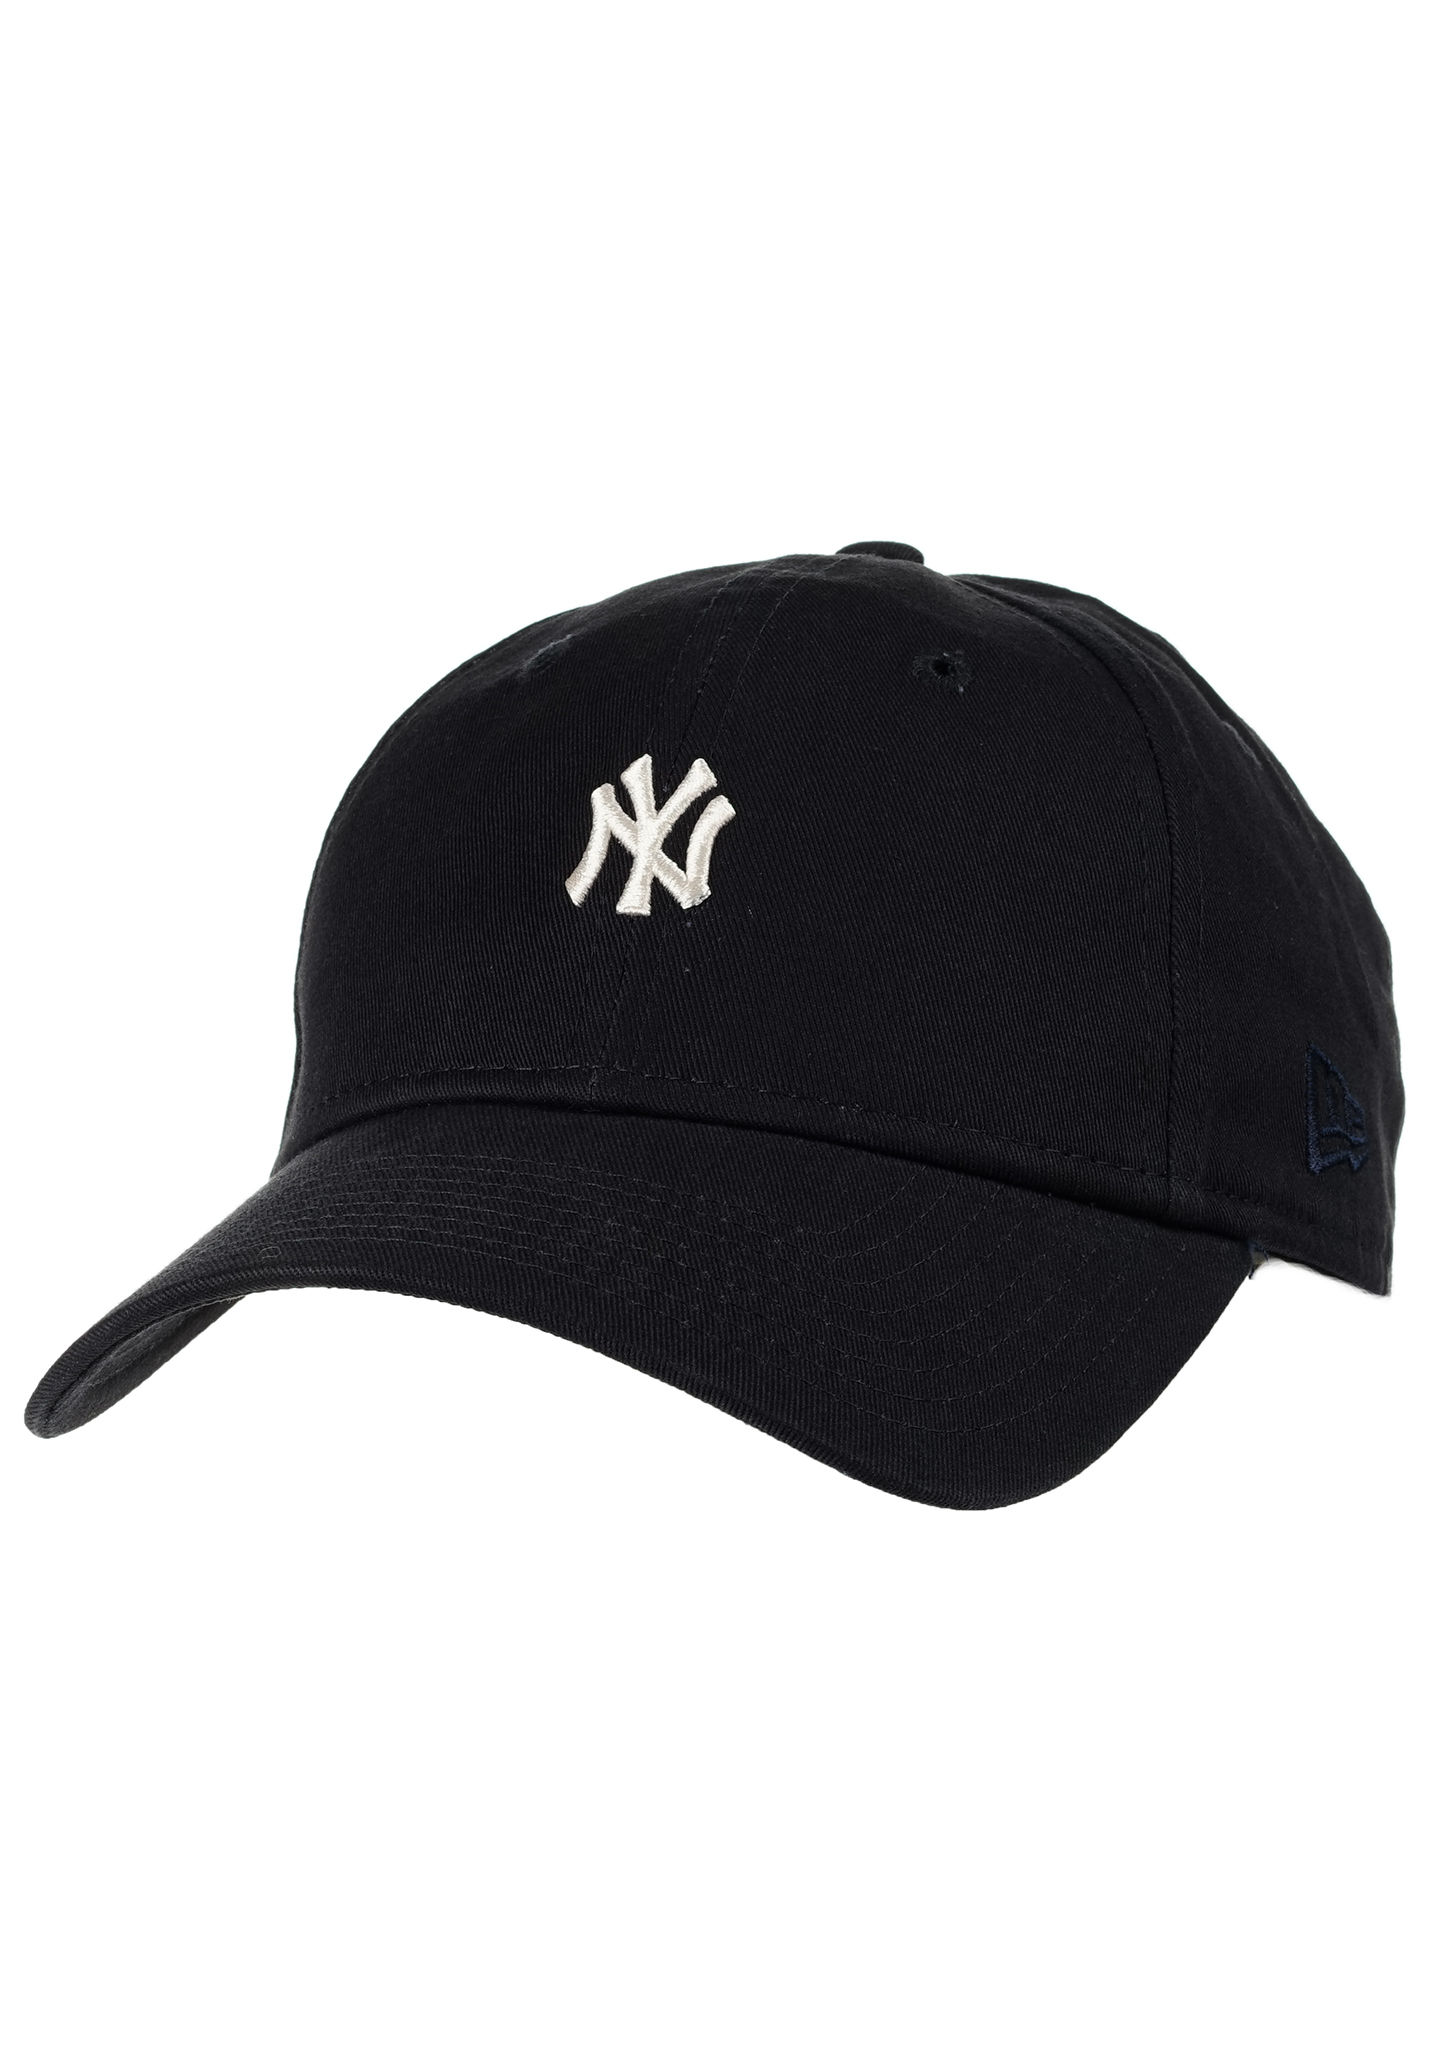 NEW Era Classic Mini Logo New York Yankees - Cap - Black - Planet Sports 33fe8898019